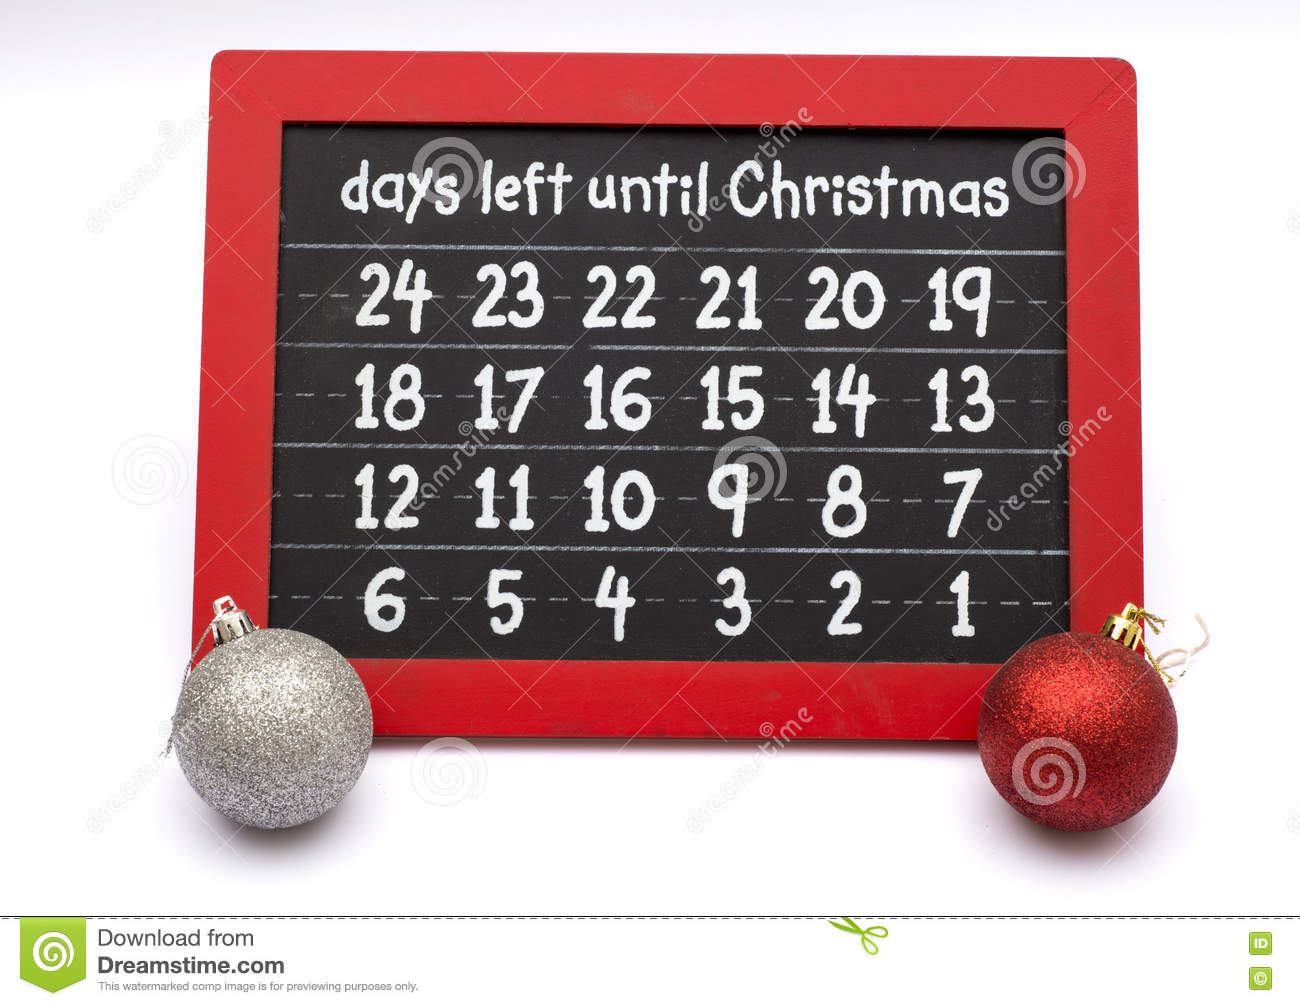 How Many Days Left Until Christmas.Days Left Until Christmas On Chalkboard With Balls Stock